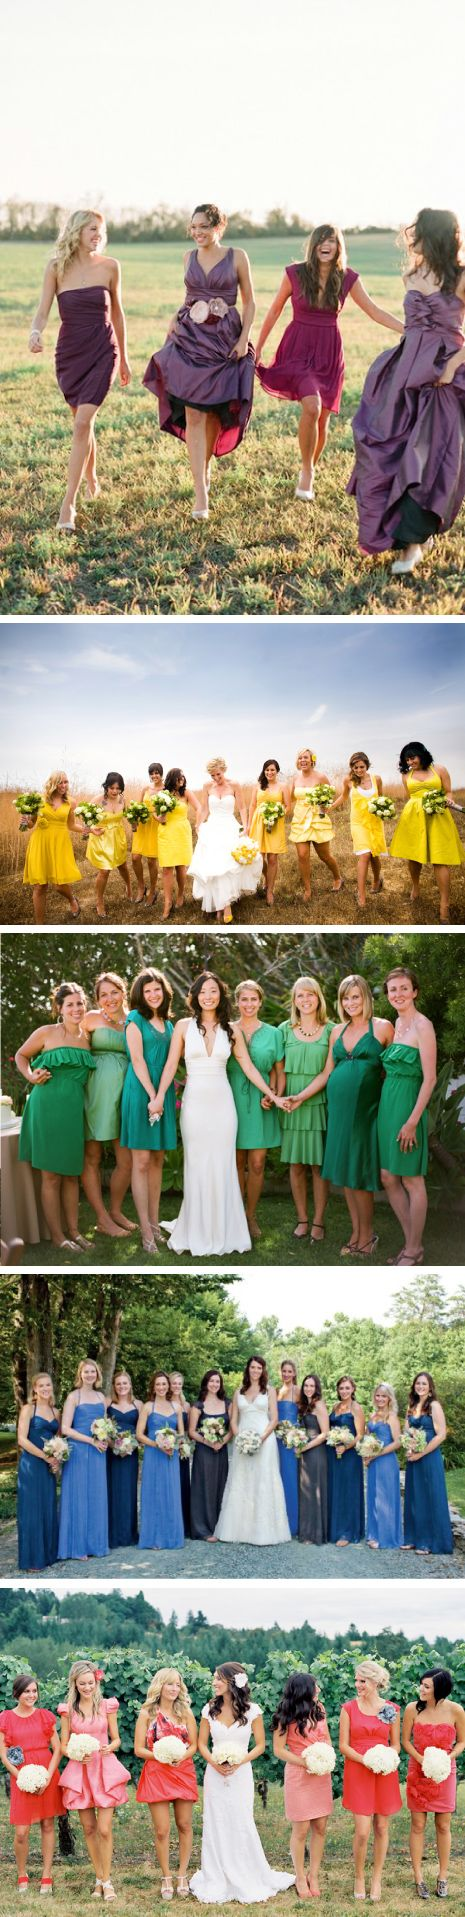 Different shades of 1 colour for bridesmaids. I love this!: Mismatched Bridesmaid Dresses, Ideas, Yellow Dresses Bridesmaid, Purple Long Bridesmaid Dresses, Mismatched Bridesmaid Green, Color Bridesmaid, Green Dress, Bridesmaids Very, Bridesmaid Color